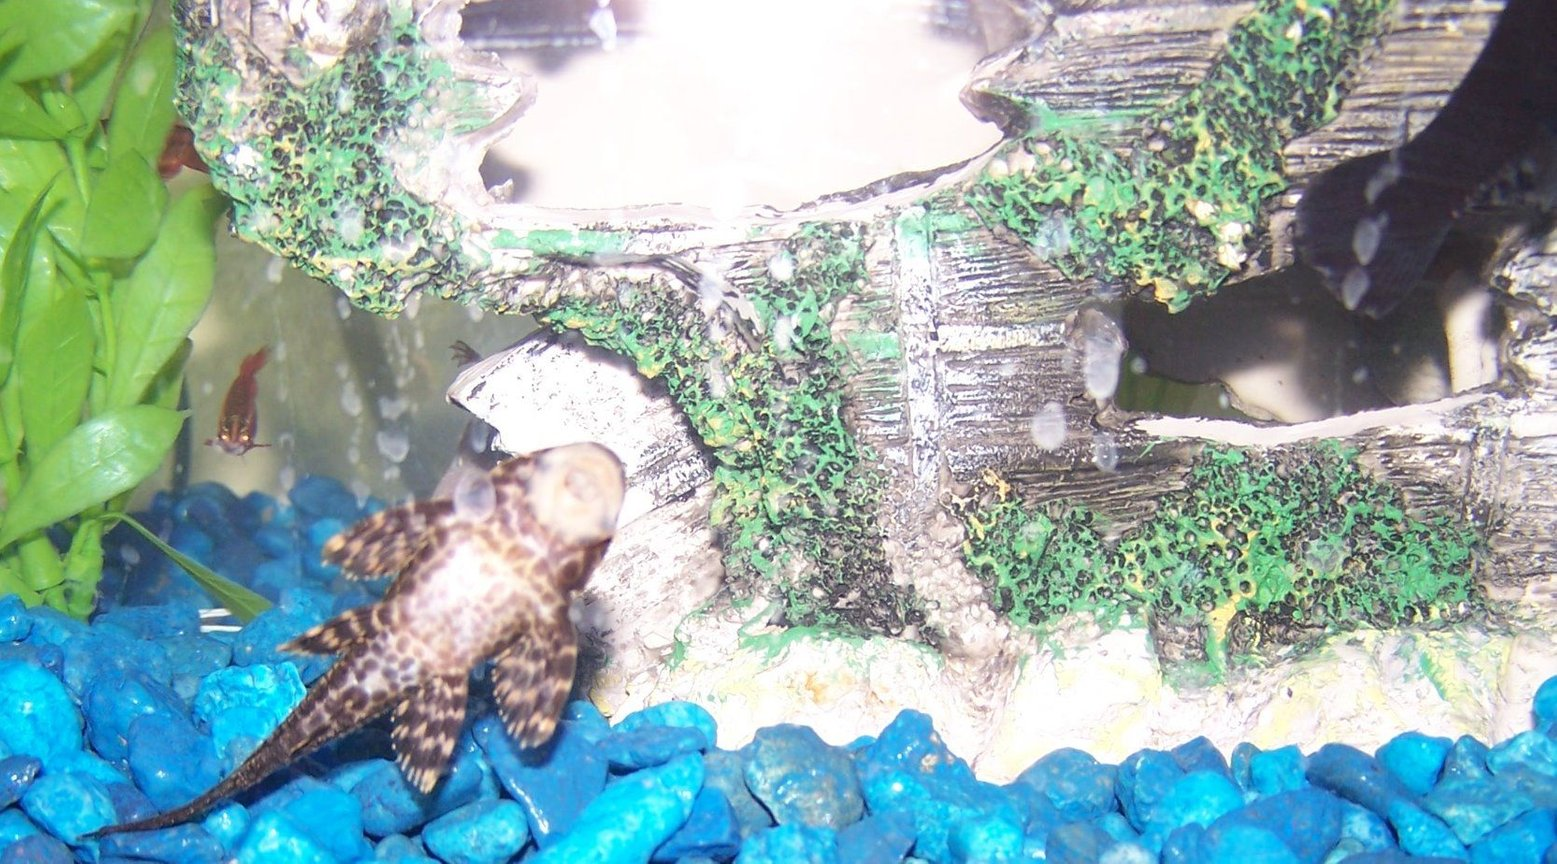 freshwater fish - glyptoperichthys gibbiceps - sailfin pleco (l-83) stocking in 29 gallons tank - pleco